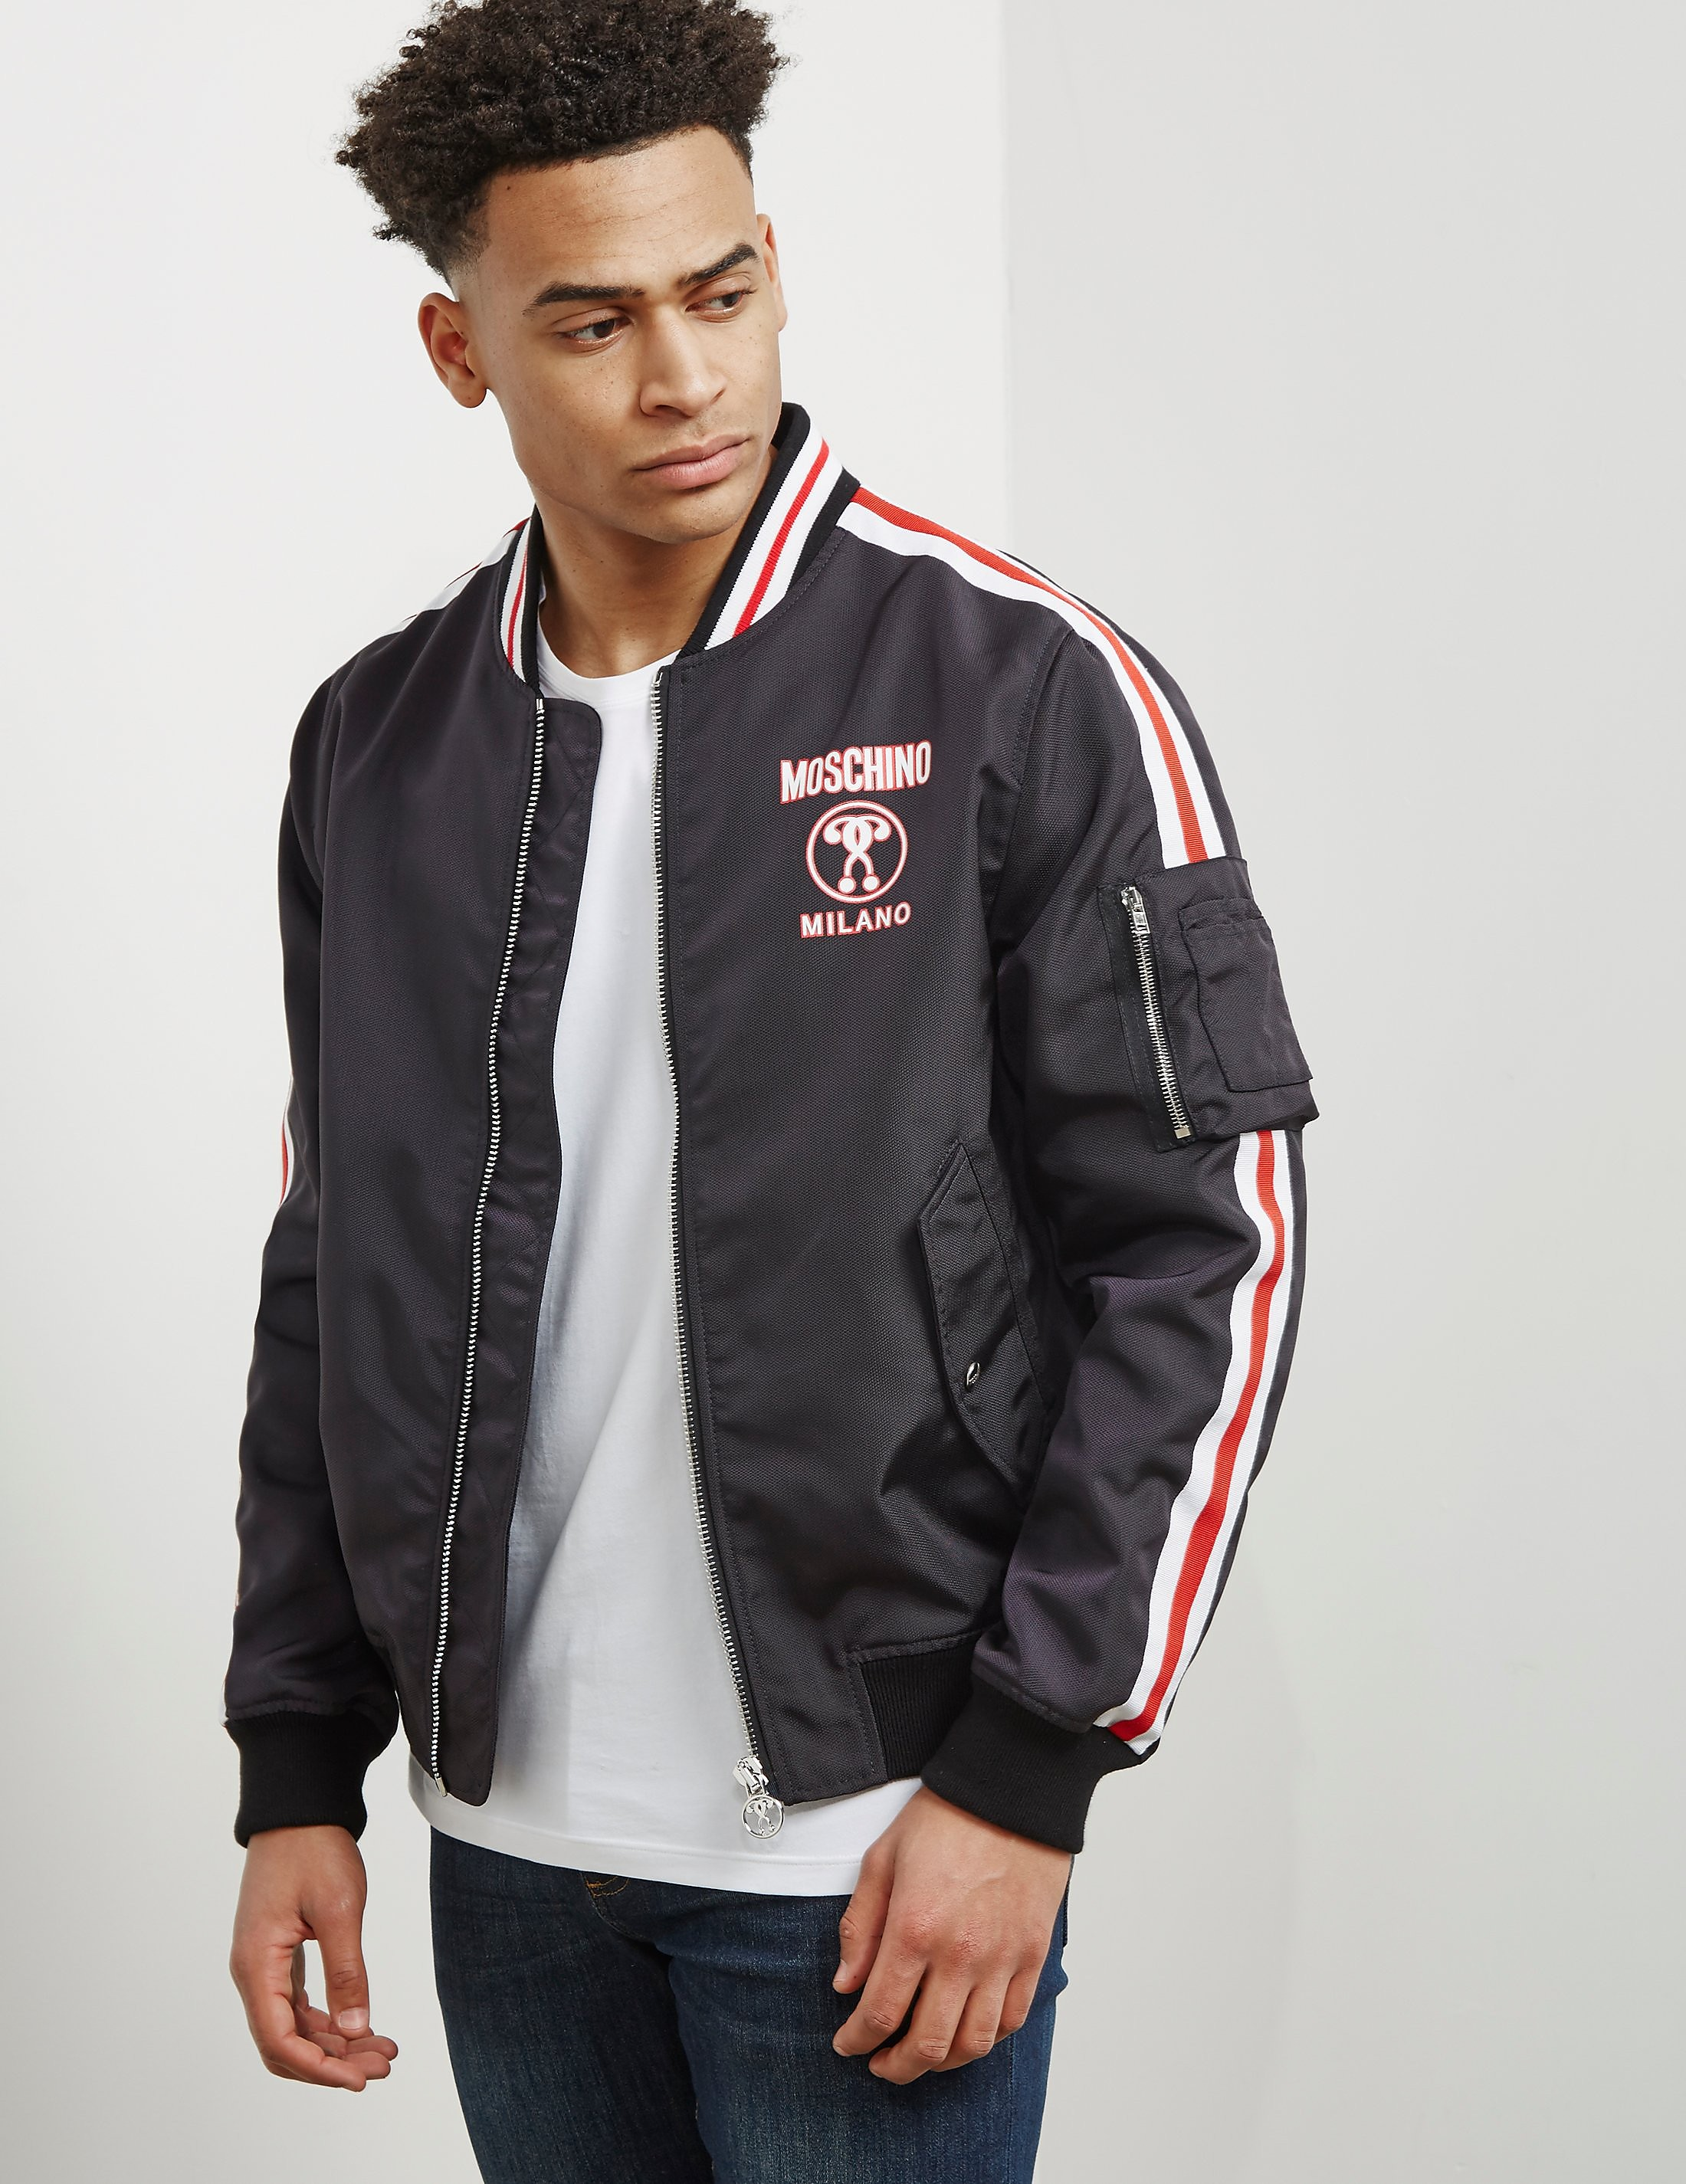 Moschino Milano Bomber Jacket - Online Exclusive